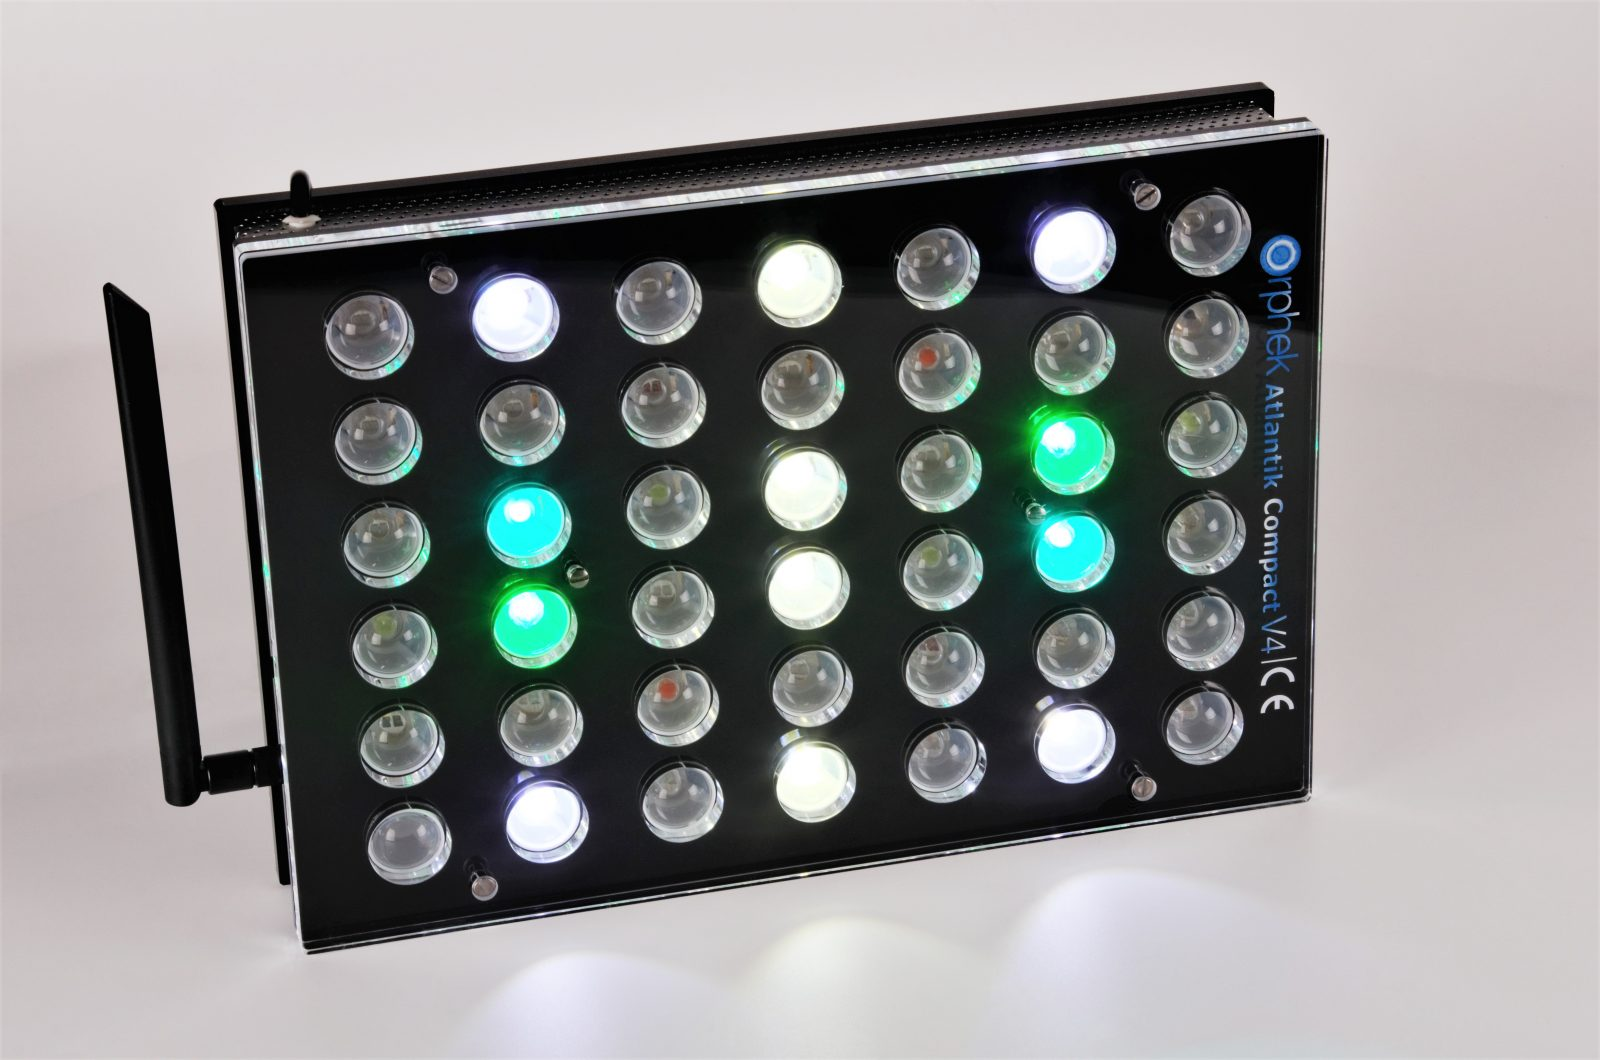 Orphek-Aquarium-LED-Iluminación-Atlantik -Compact-V4-light-on-channel 1